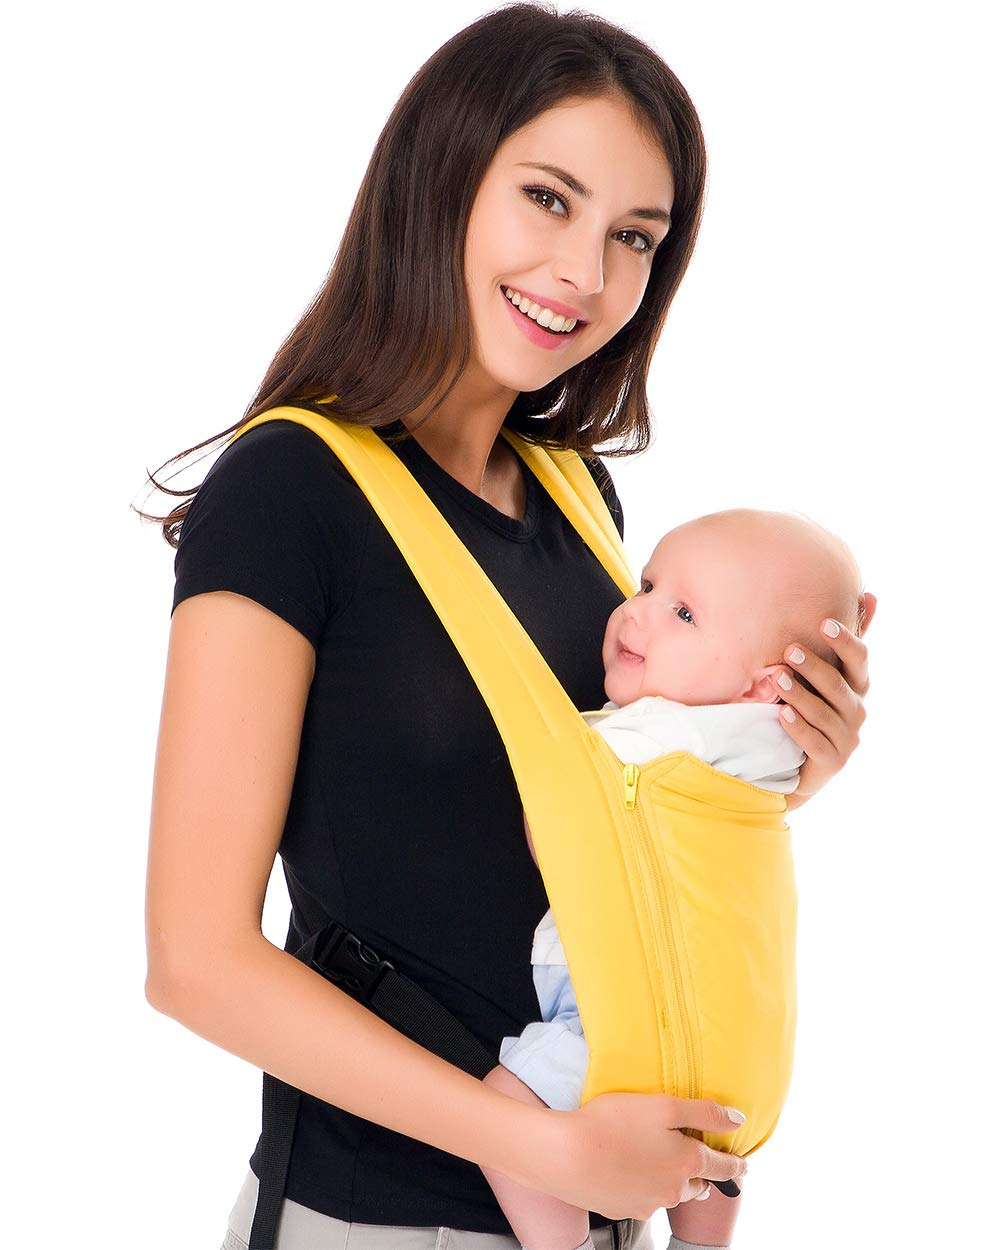 Cuby Ergonomic Baby Carrier,Classic Carrier, Soft & Breathable Baby Carriers Backpack Front and Back for Infants to Toddlers Up to 36 lbs (Yellow)